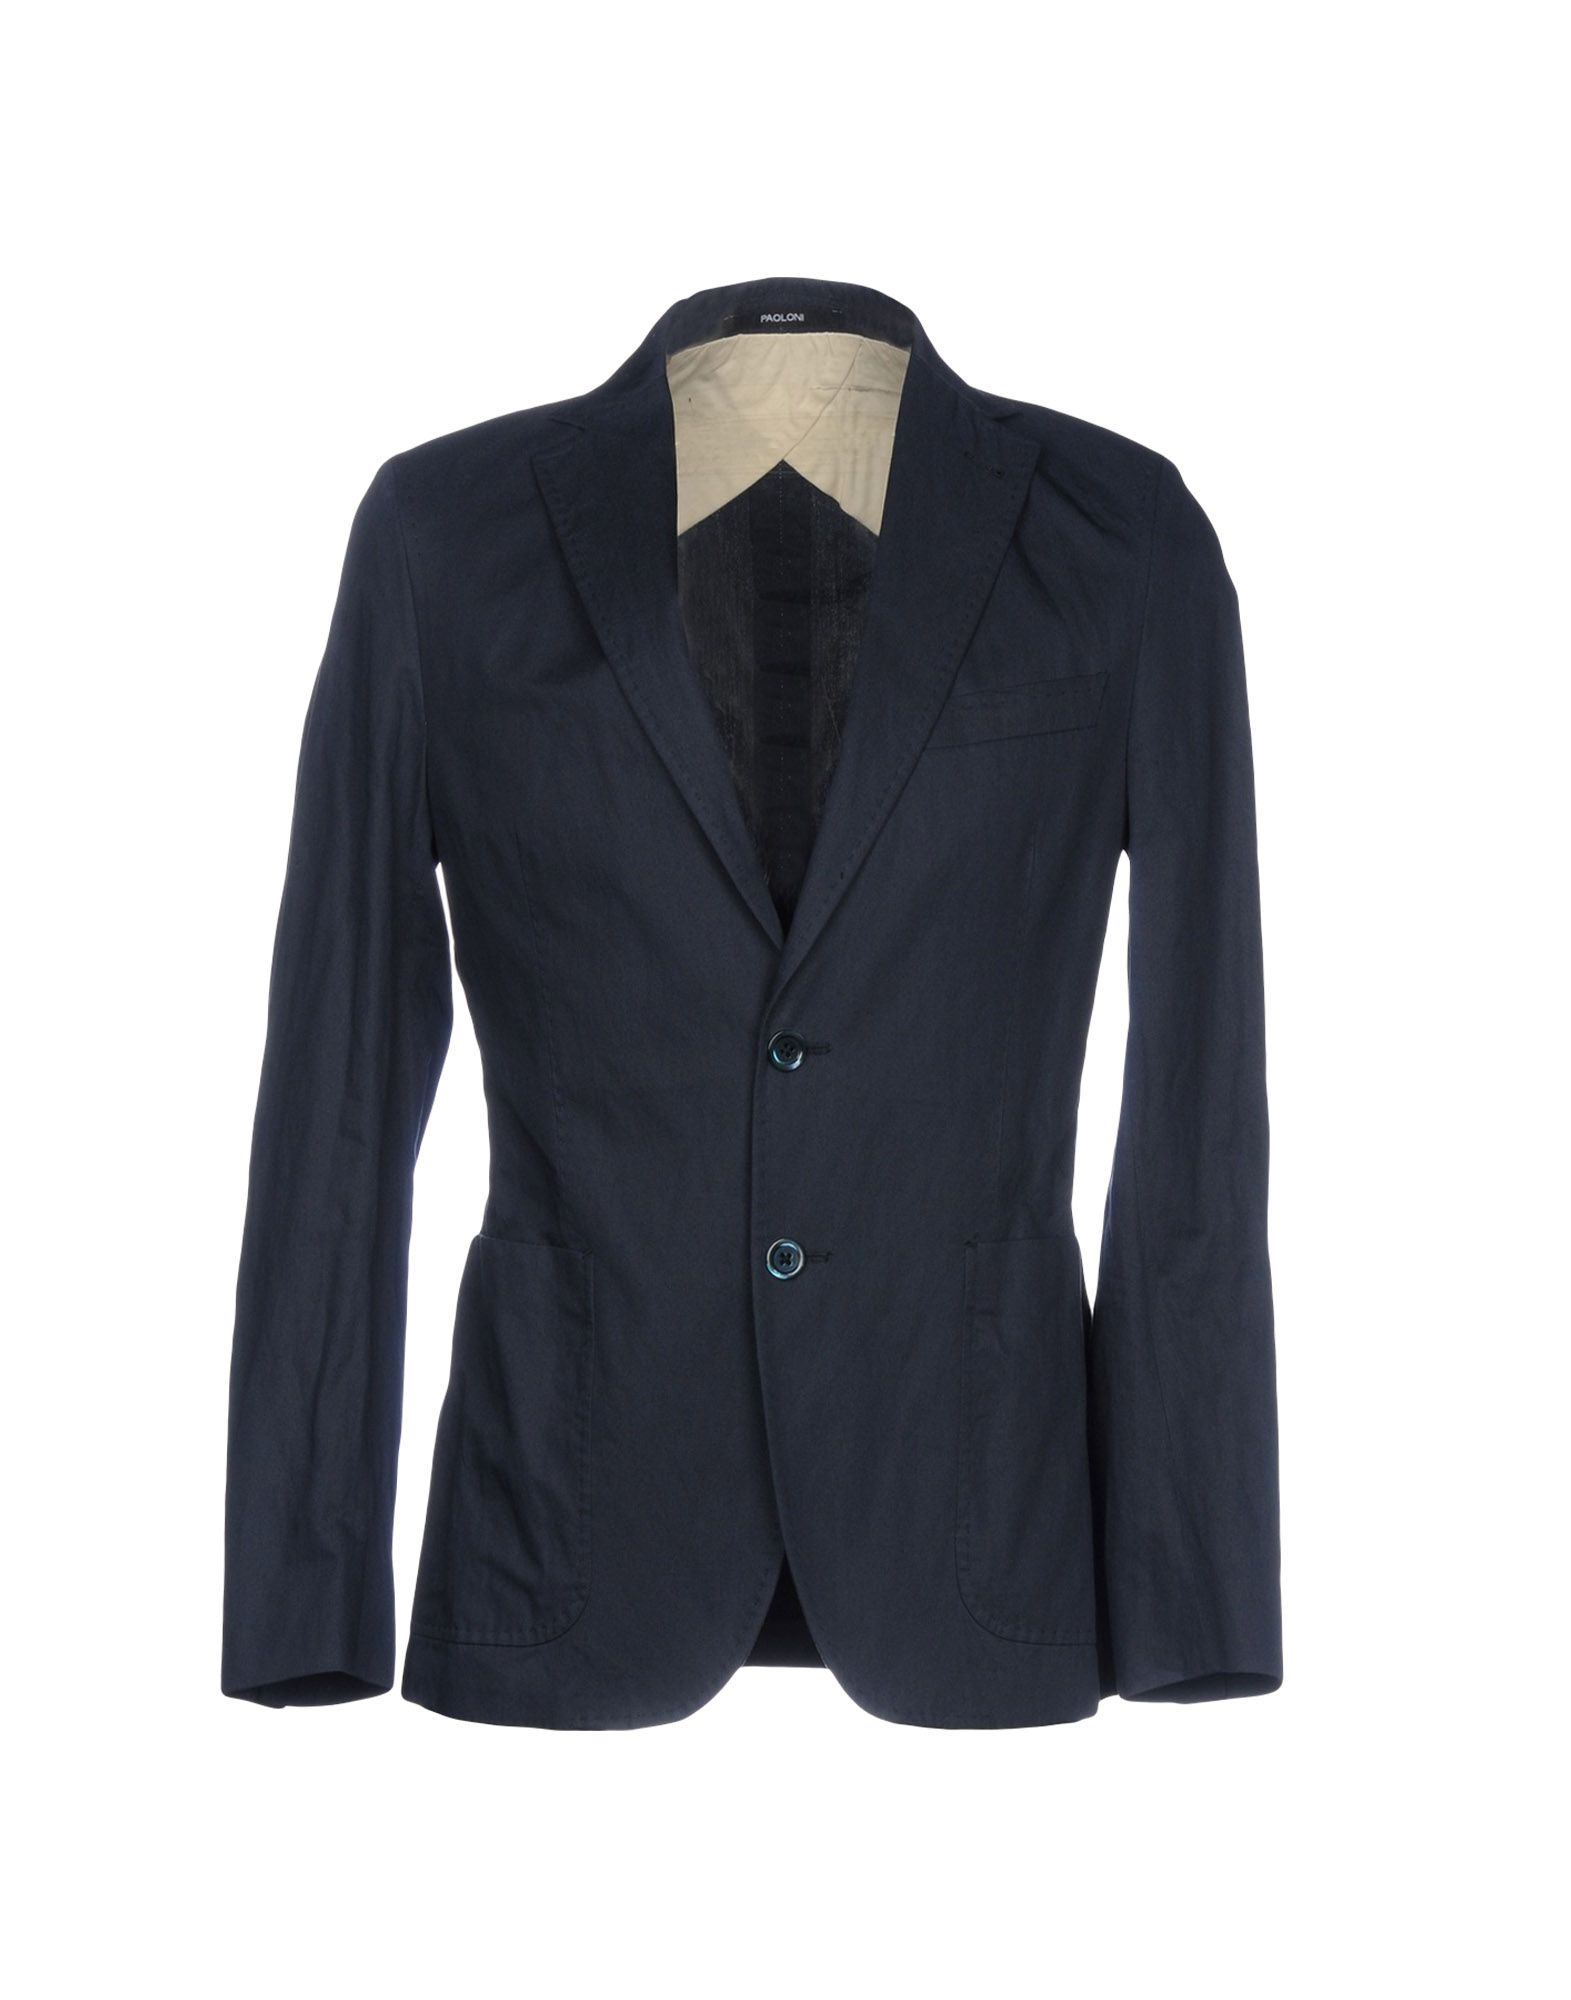 Paoloni Men Spring Summer And Fall Winter Collections Shop Online Black Blazer Jaket Korea Style Sk 15 At Yoox